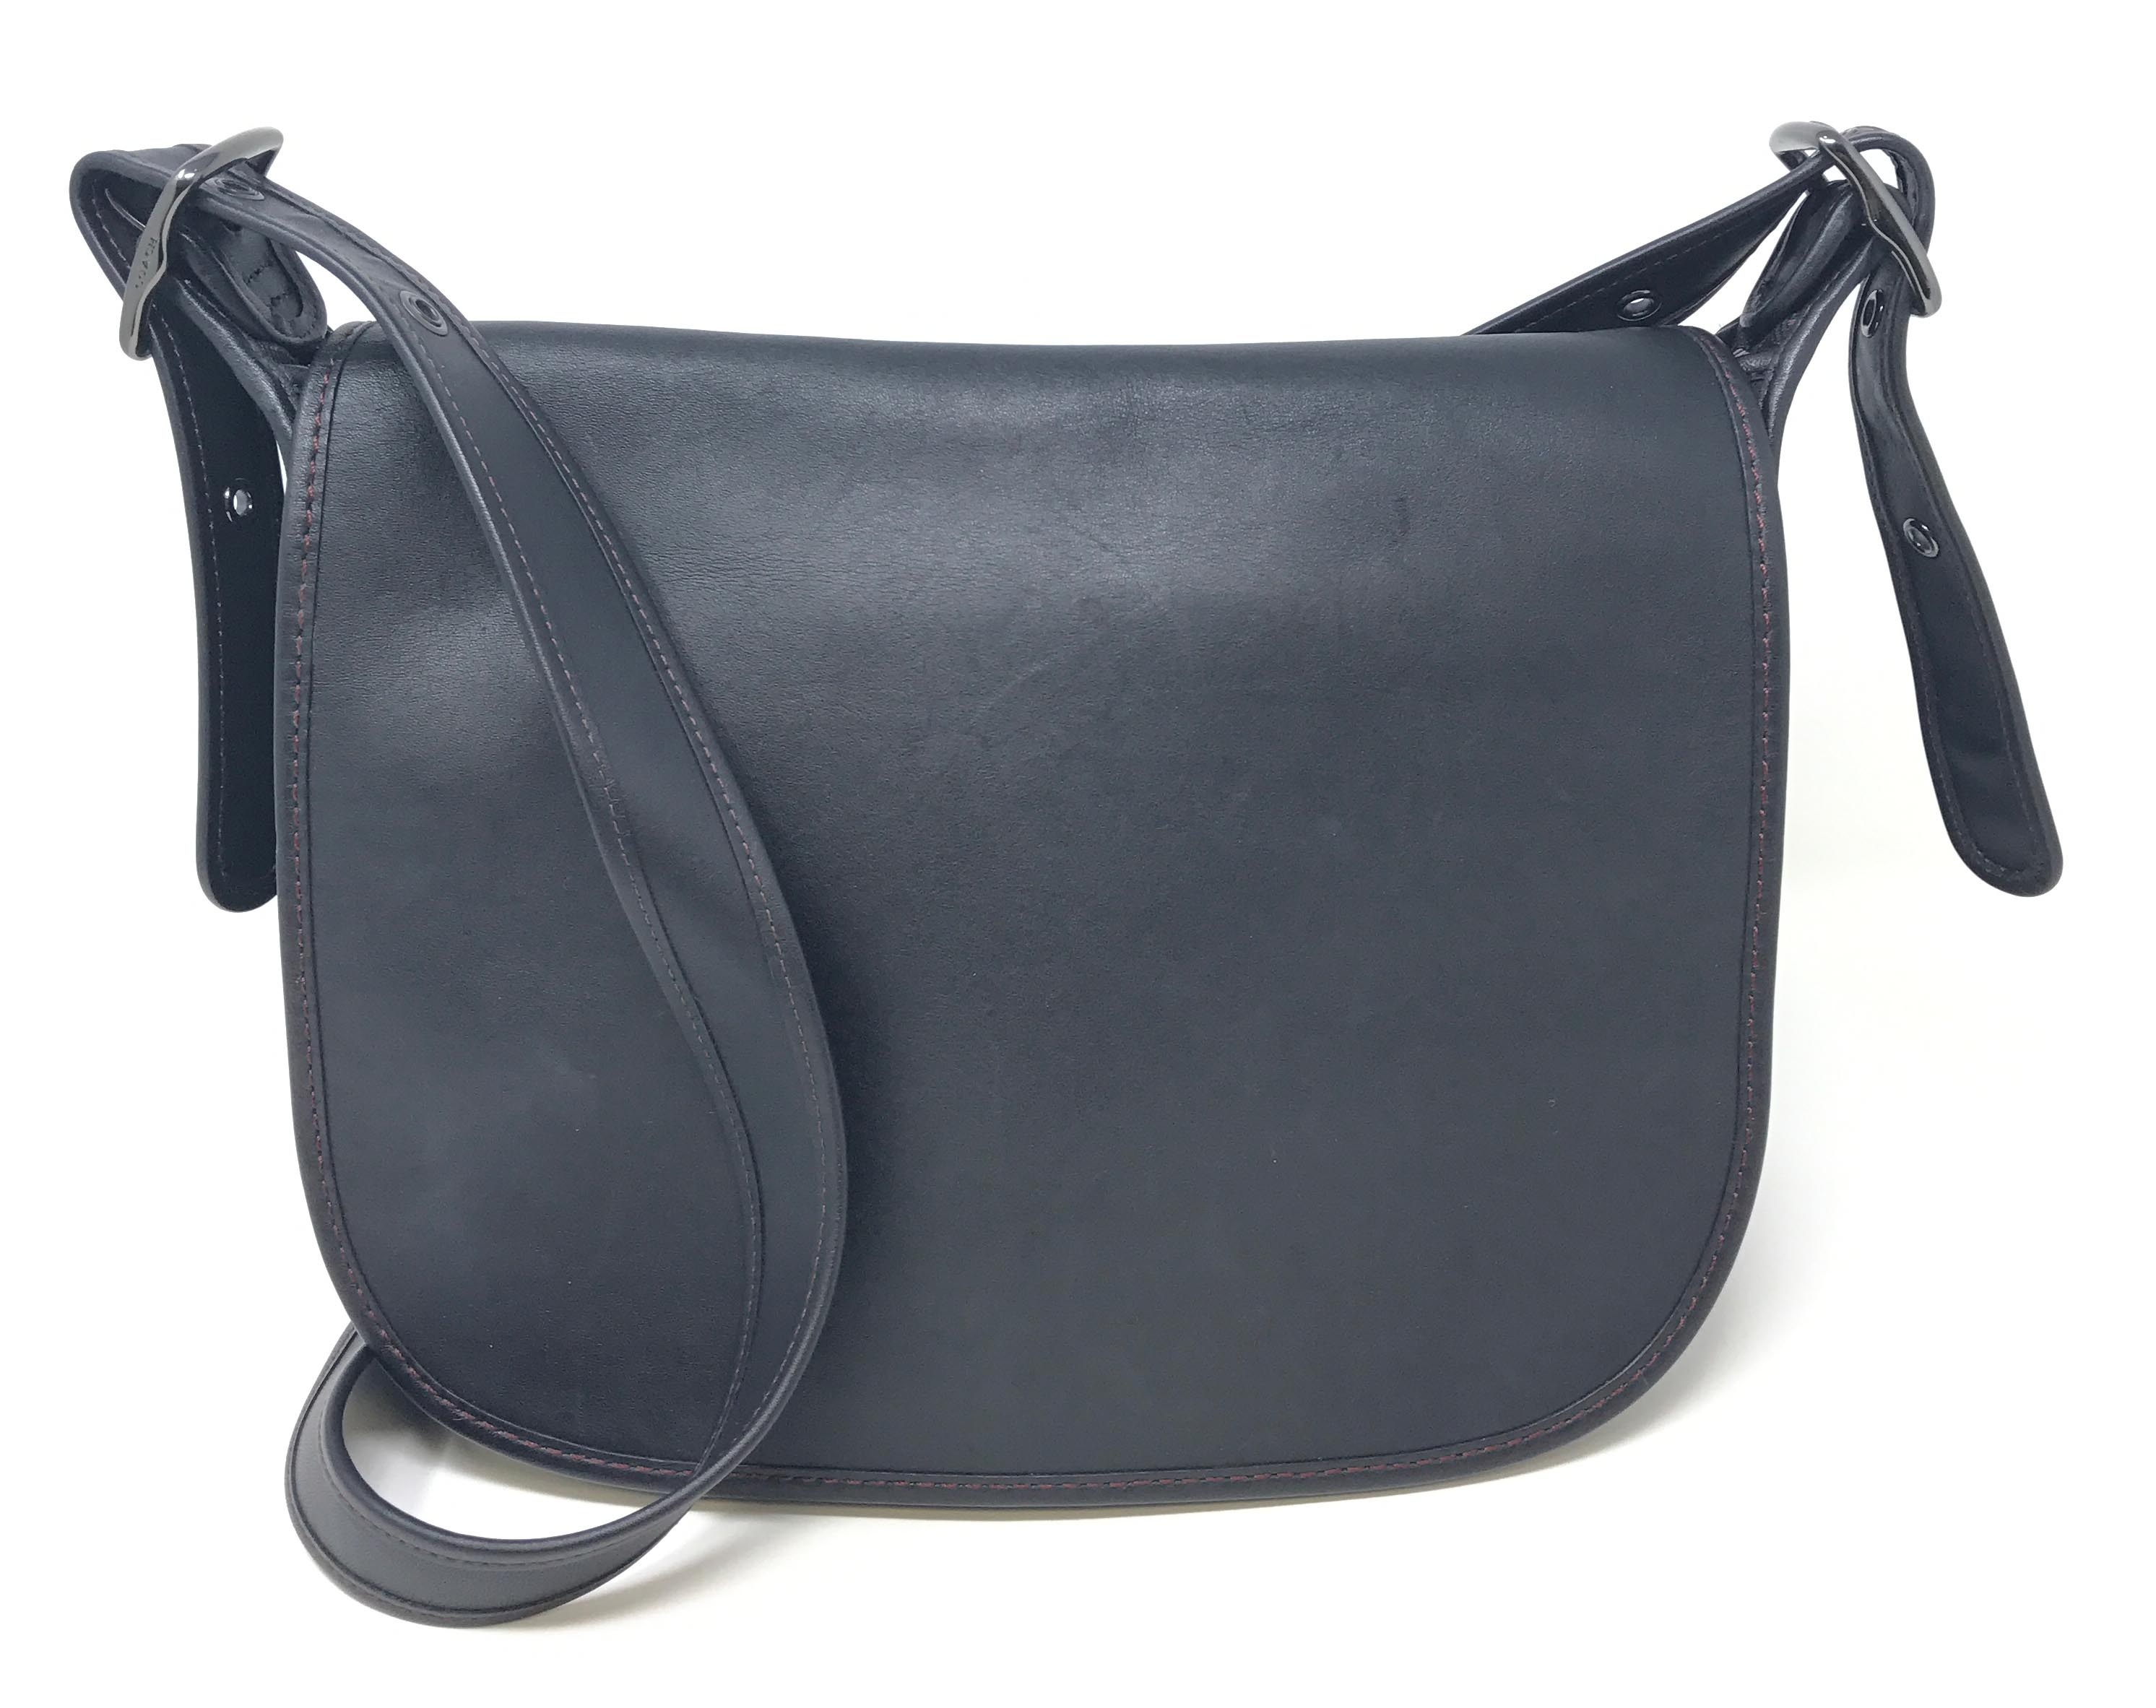 996dc68cb ... ireland coach saddle bag glovetanned leather nickle black 55298 womens  bag 77b55 59d7c ...